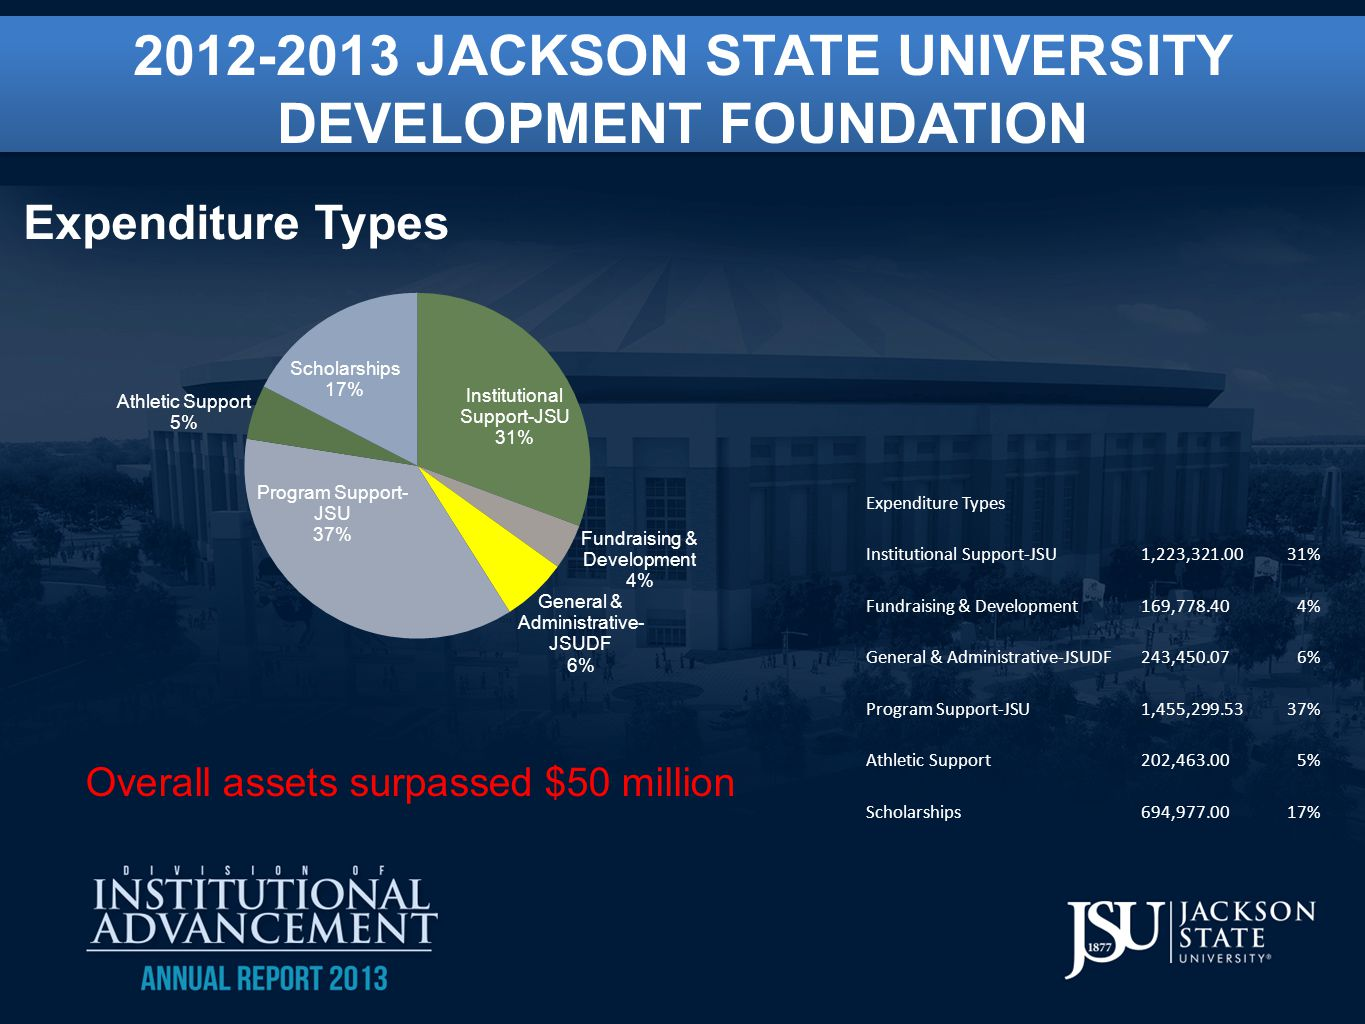 2012-2013 JACKSON STATE UNIVERSITY DEVELOPMENT FOUNDATION 2012-2013 JACKSON STATE UNIVERSITY DEVELOPMENT FOUNDATION Expenditure Types Institutional Support-JSU 1,223,321.0031% Fundraising & Development 169,778.404% General & Administrative-JSUDF 243,450.076% Program Support-JSU 1,455,299.5337% Athletic Support 202,463.005% Scholarships 694,977.0017% Overall assets surpassed $50 million